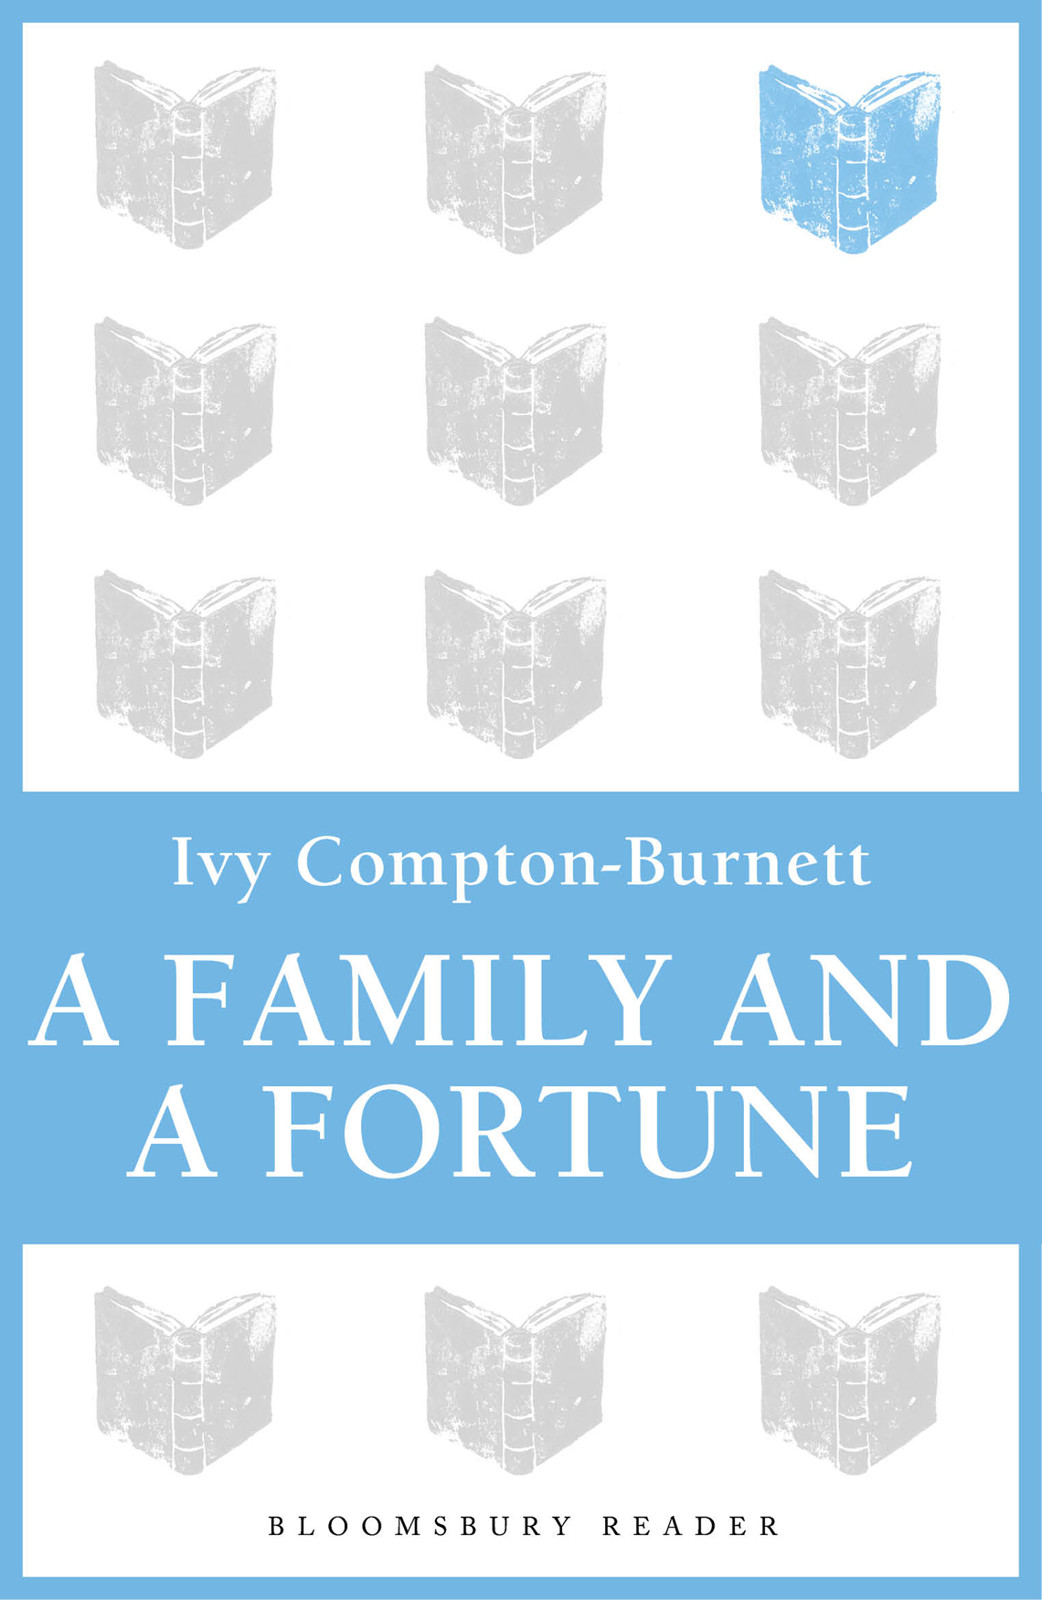 Compton-Burnett Ivy - A Family and a Fortune скачать бесплатно